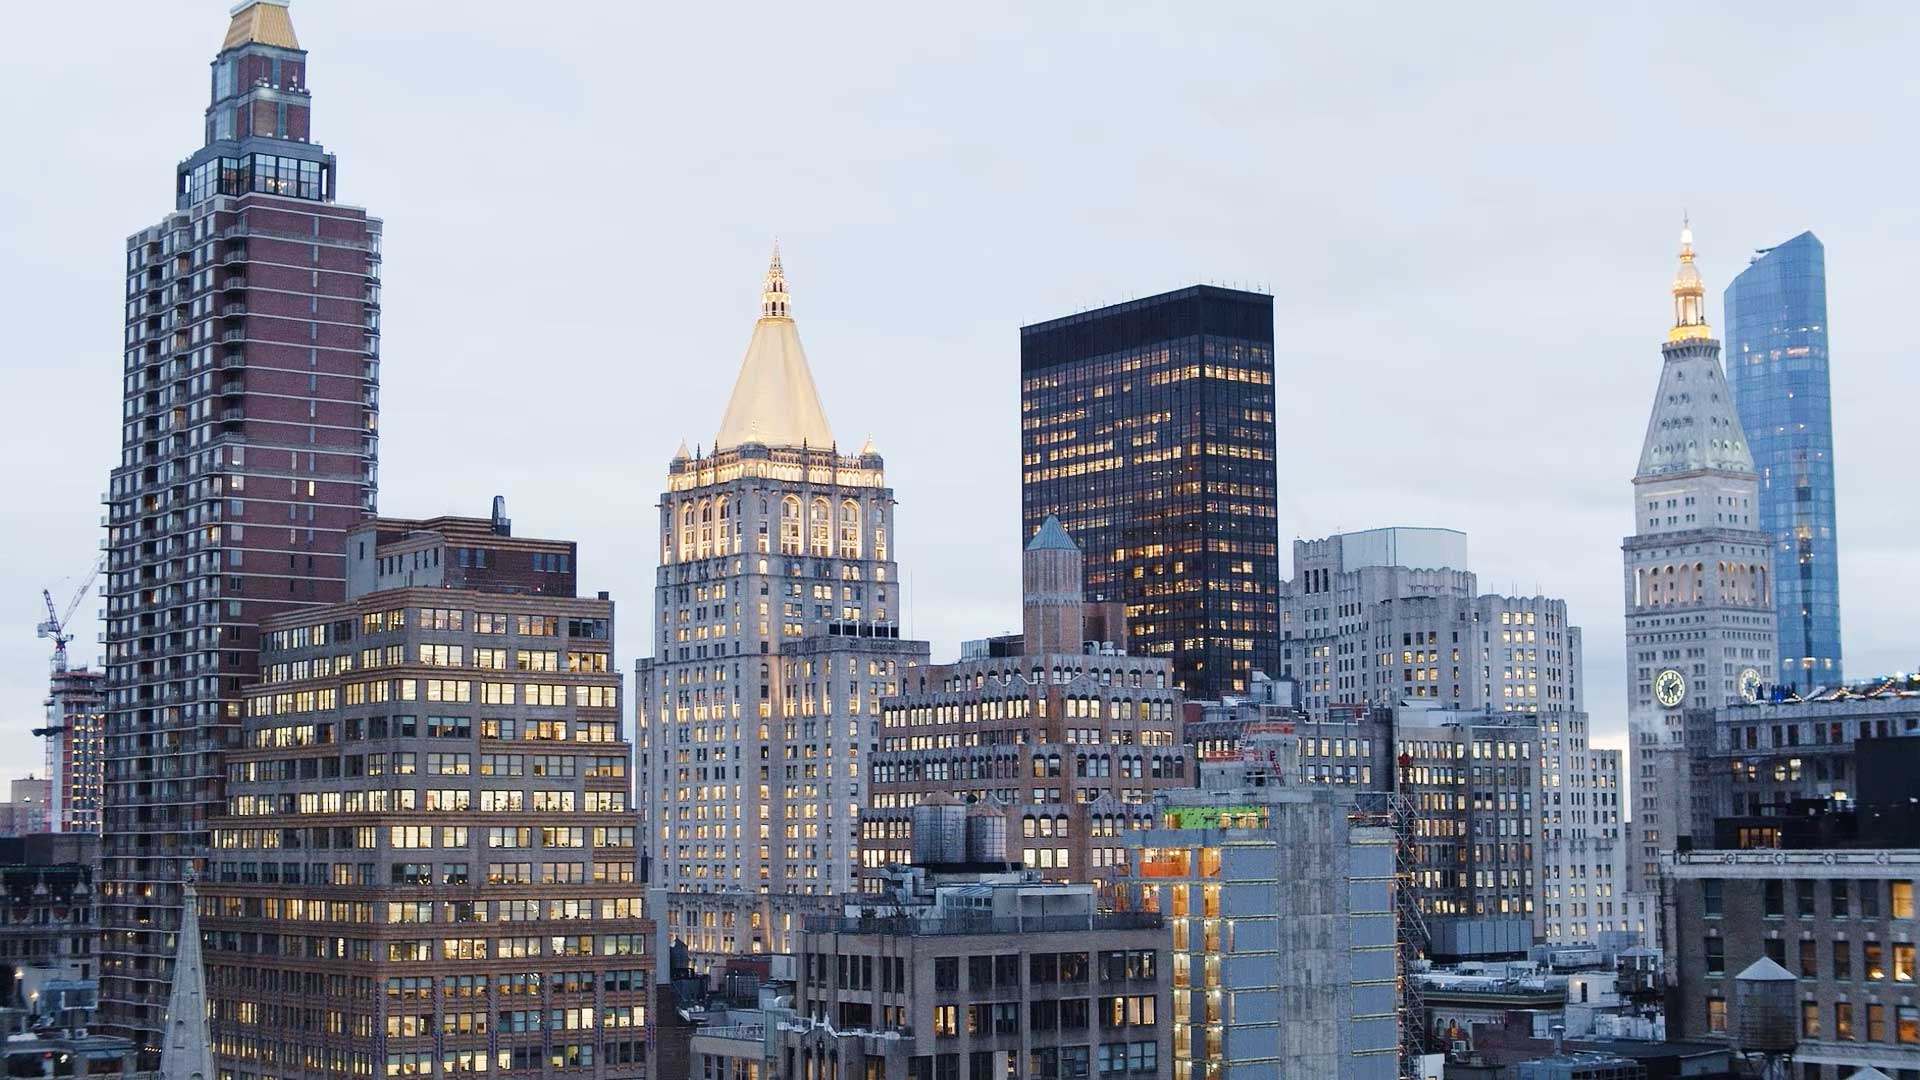 New York by Design: Architecture